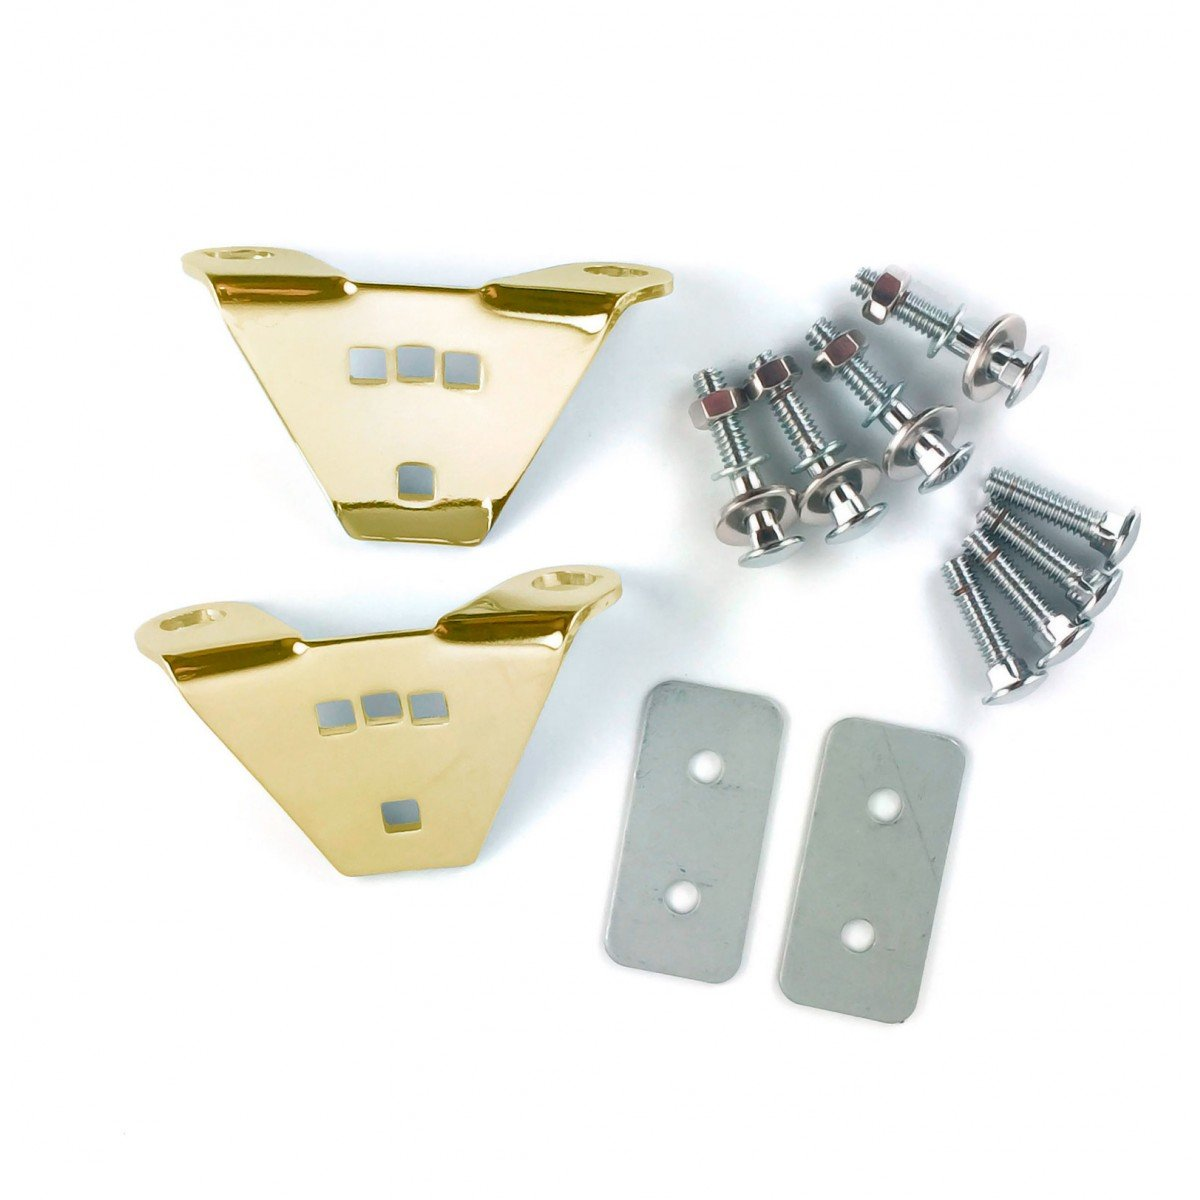 Latin Percussion LP912B Double Conga Mounting Brackets, Set of 2 - Gold